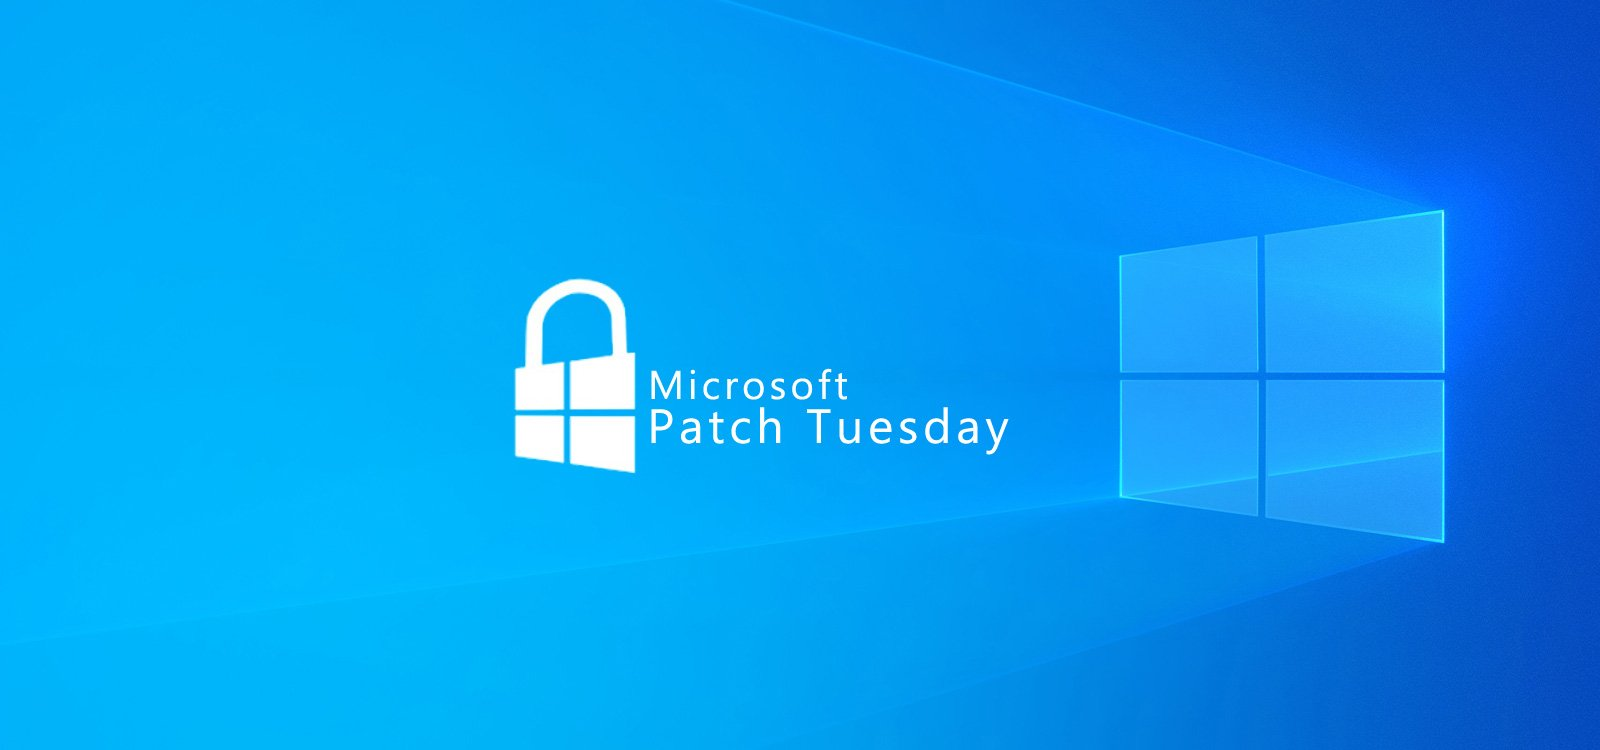 Microsoft April 2021 Patch Tuesday Fixes 108 Flaws, 5 Zero-days